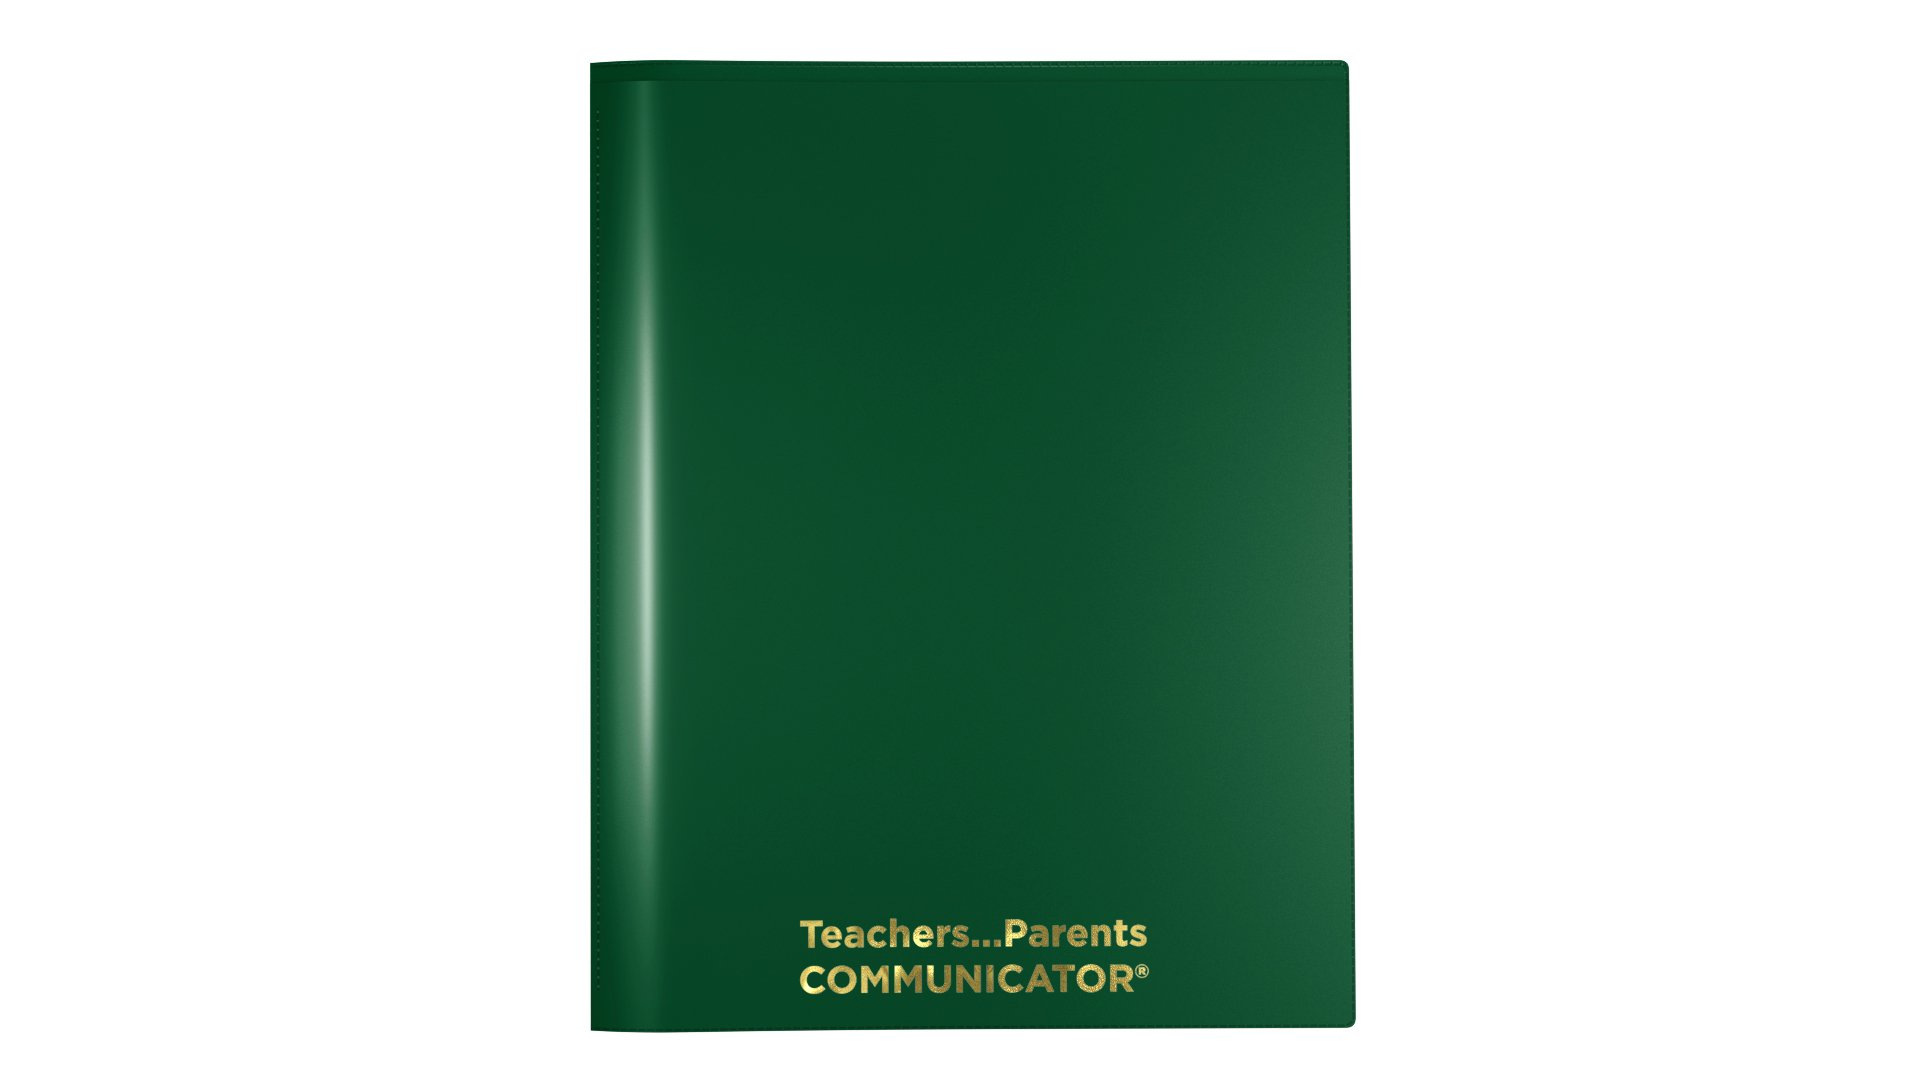 Nicky's Communicator Folder (Pack of 50), Flexible Plastic Folder for Letter Size Papers (Green)